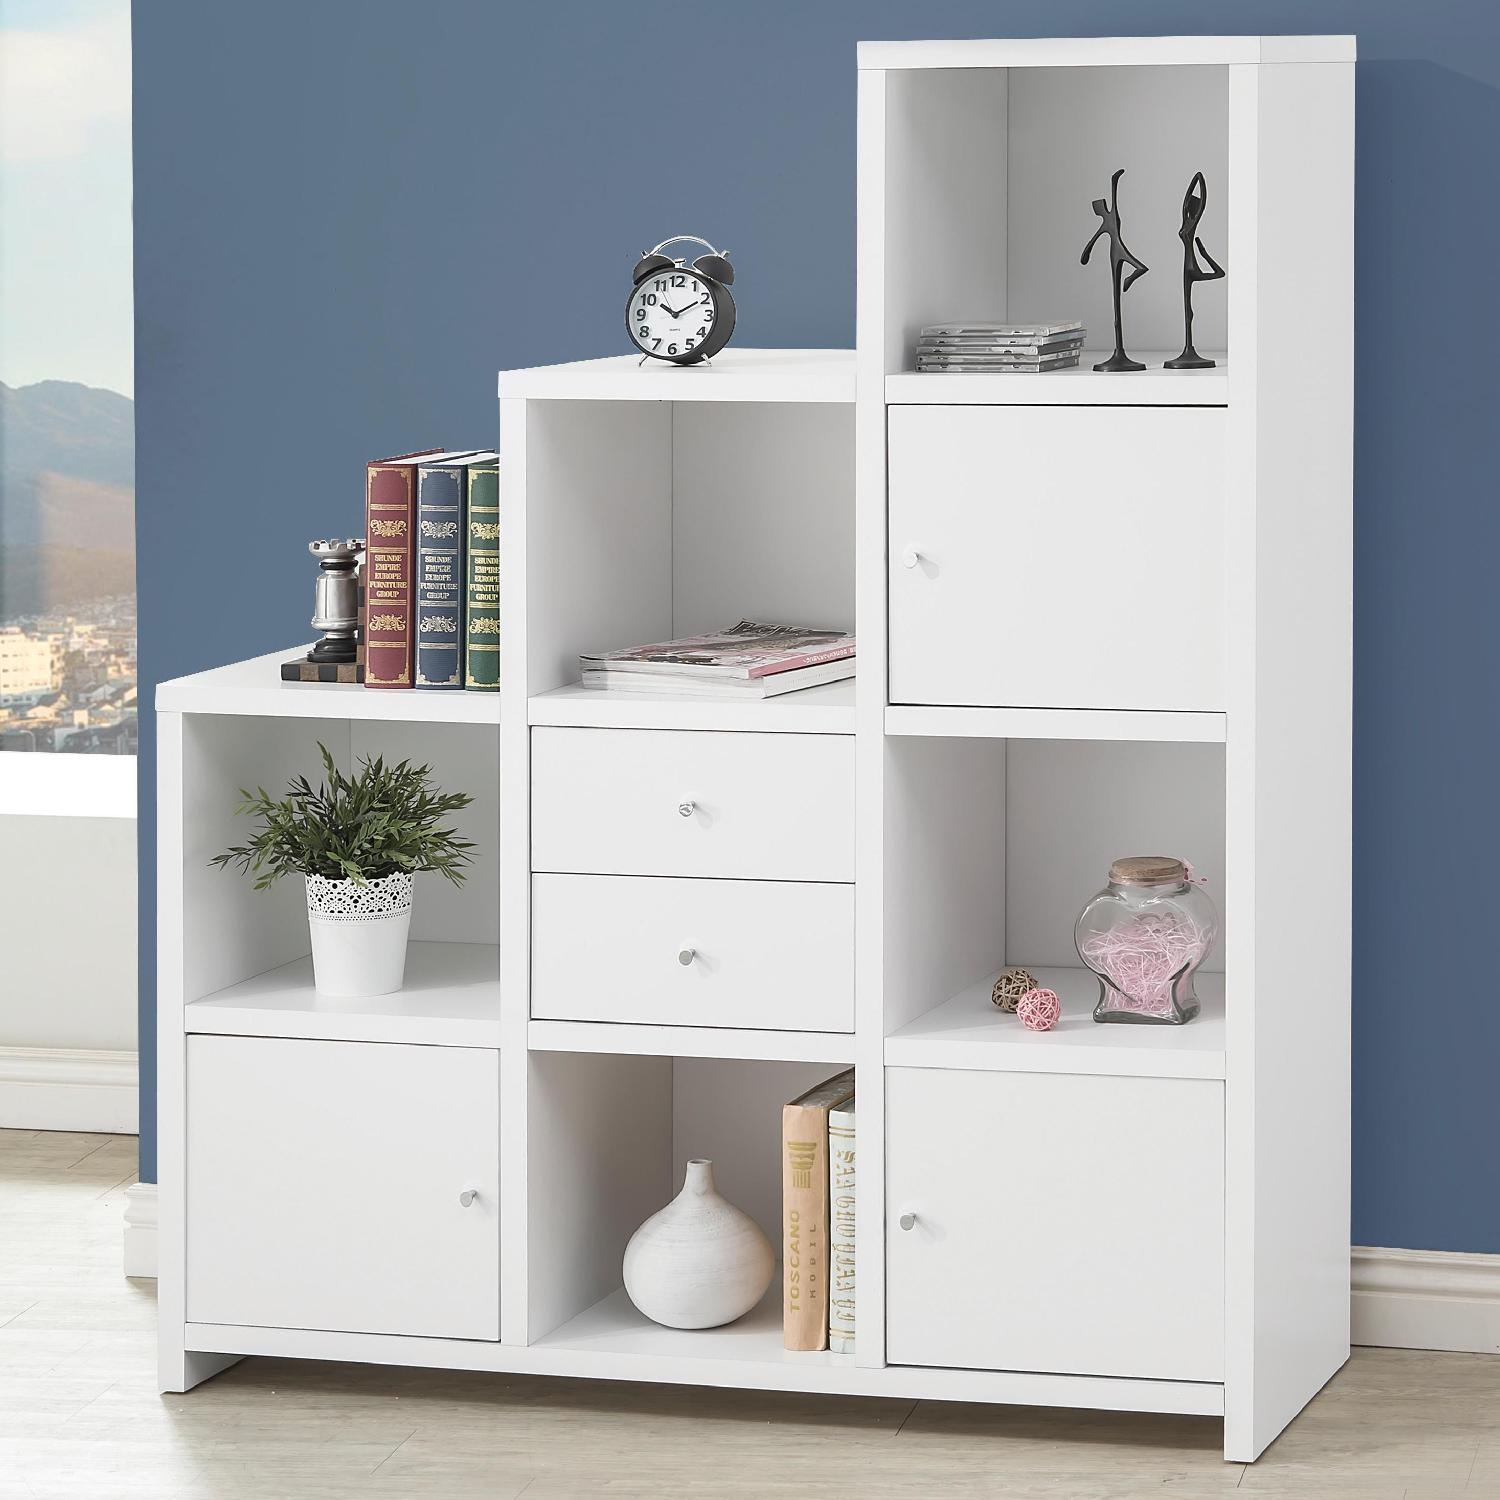 Reversible Asymmetric Shelf Cabinet in White Finish - image-1